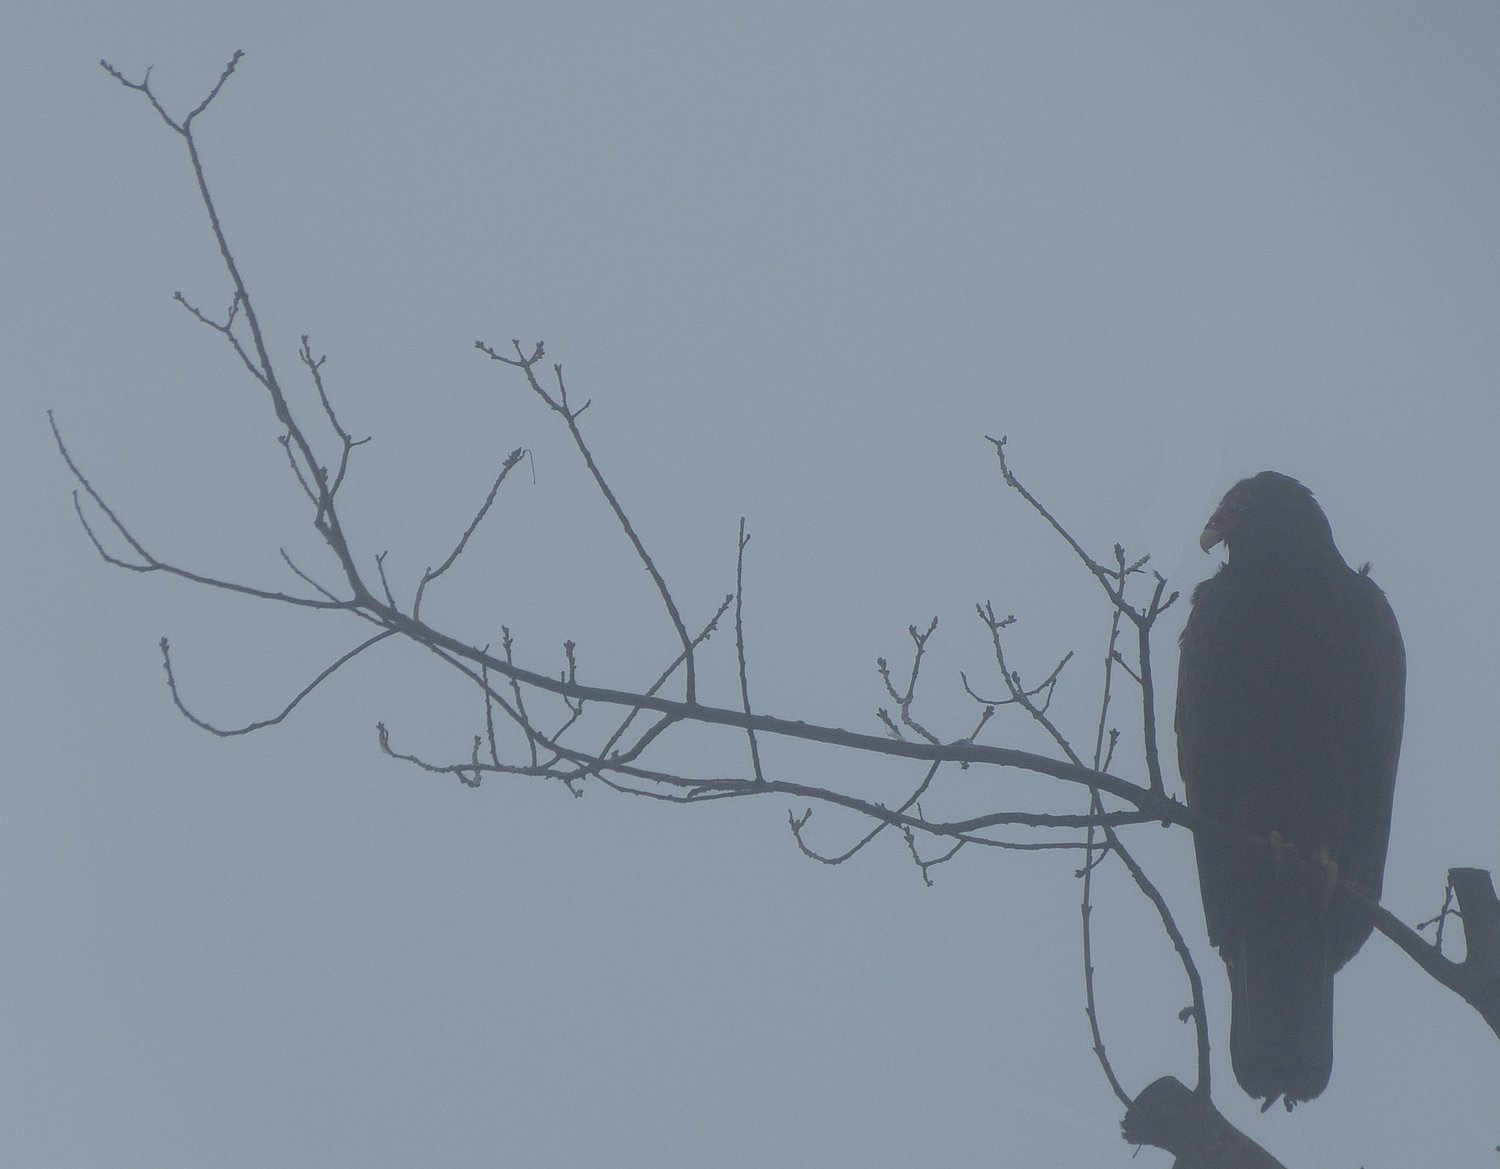 - A vulture in the winter fog. <br>--- Click to see ORIGINAL --- - -  Panasonic DMC-FZ150 - Tony Karp, design, art, photography, techno-impressionist, techno-impressionism, aerial photography , drone , drones , dji , mavic pro , video , 3D printing - Books -